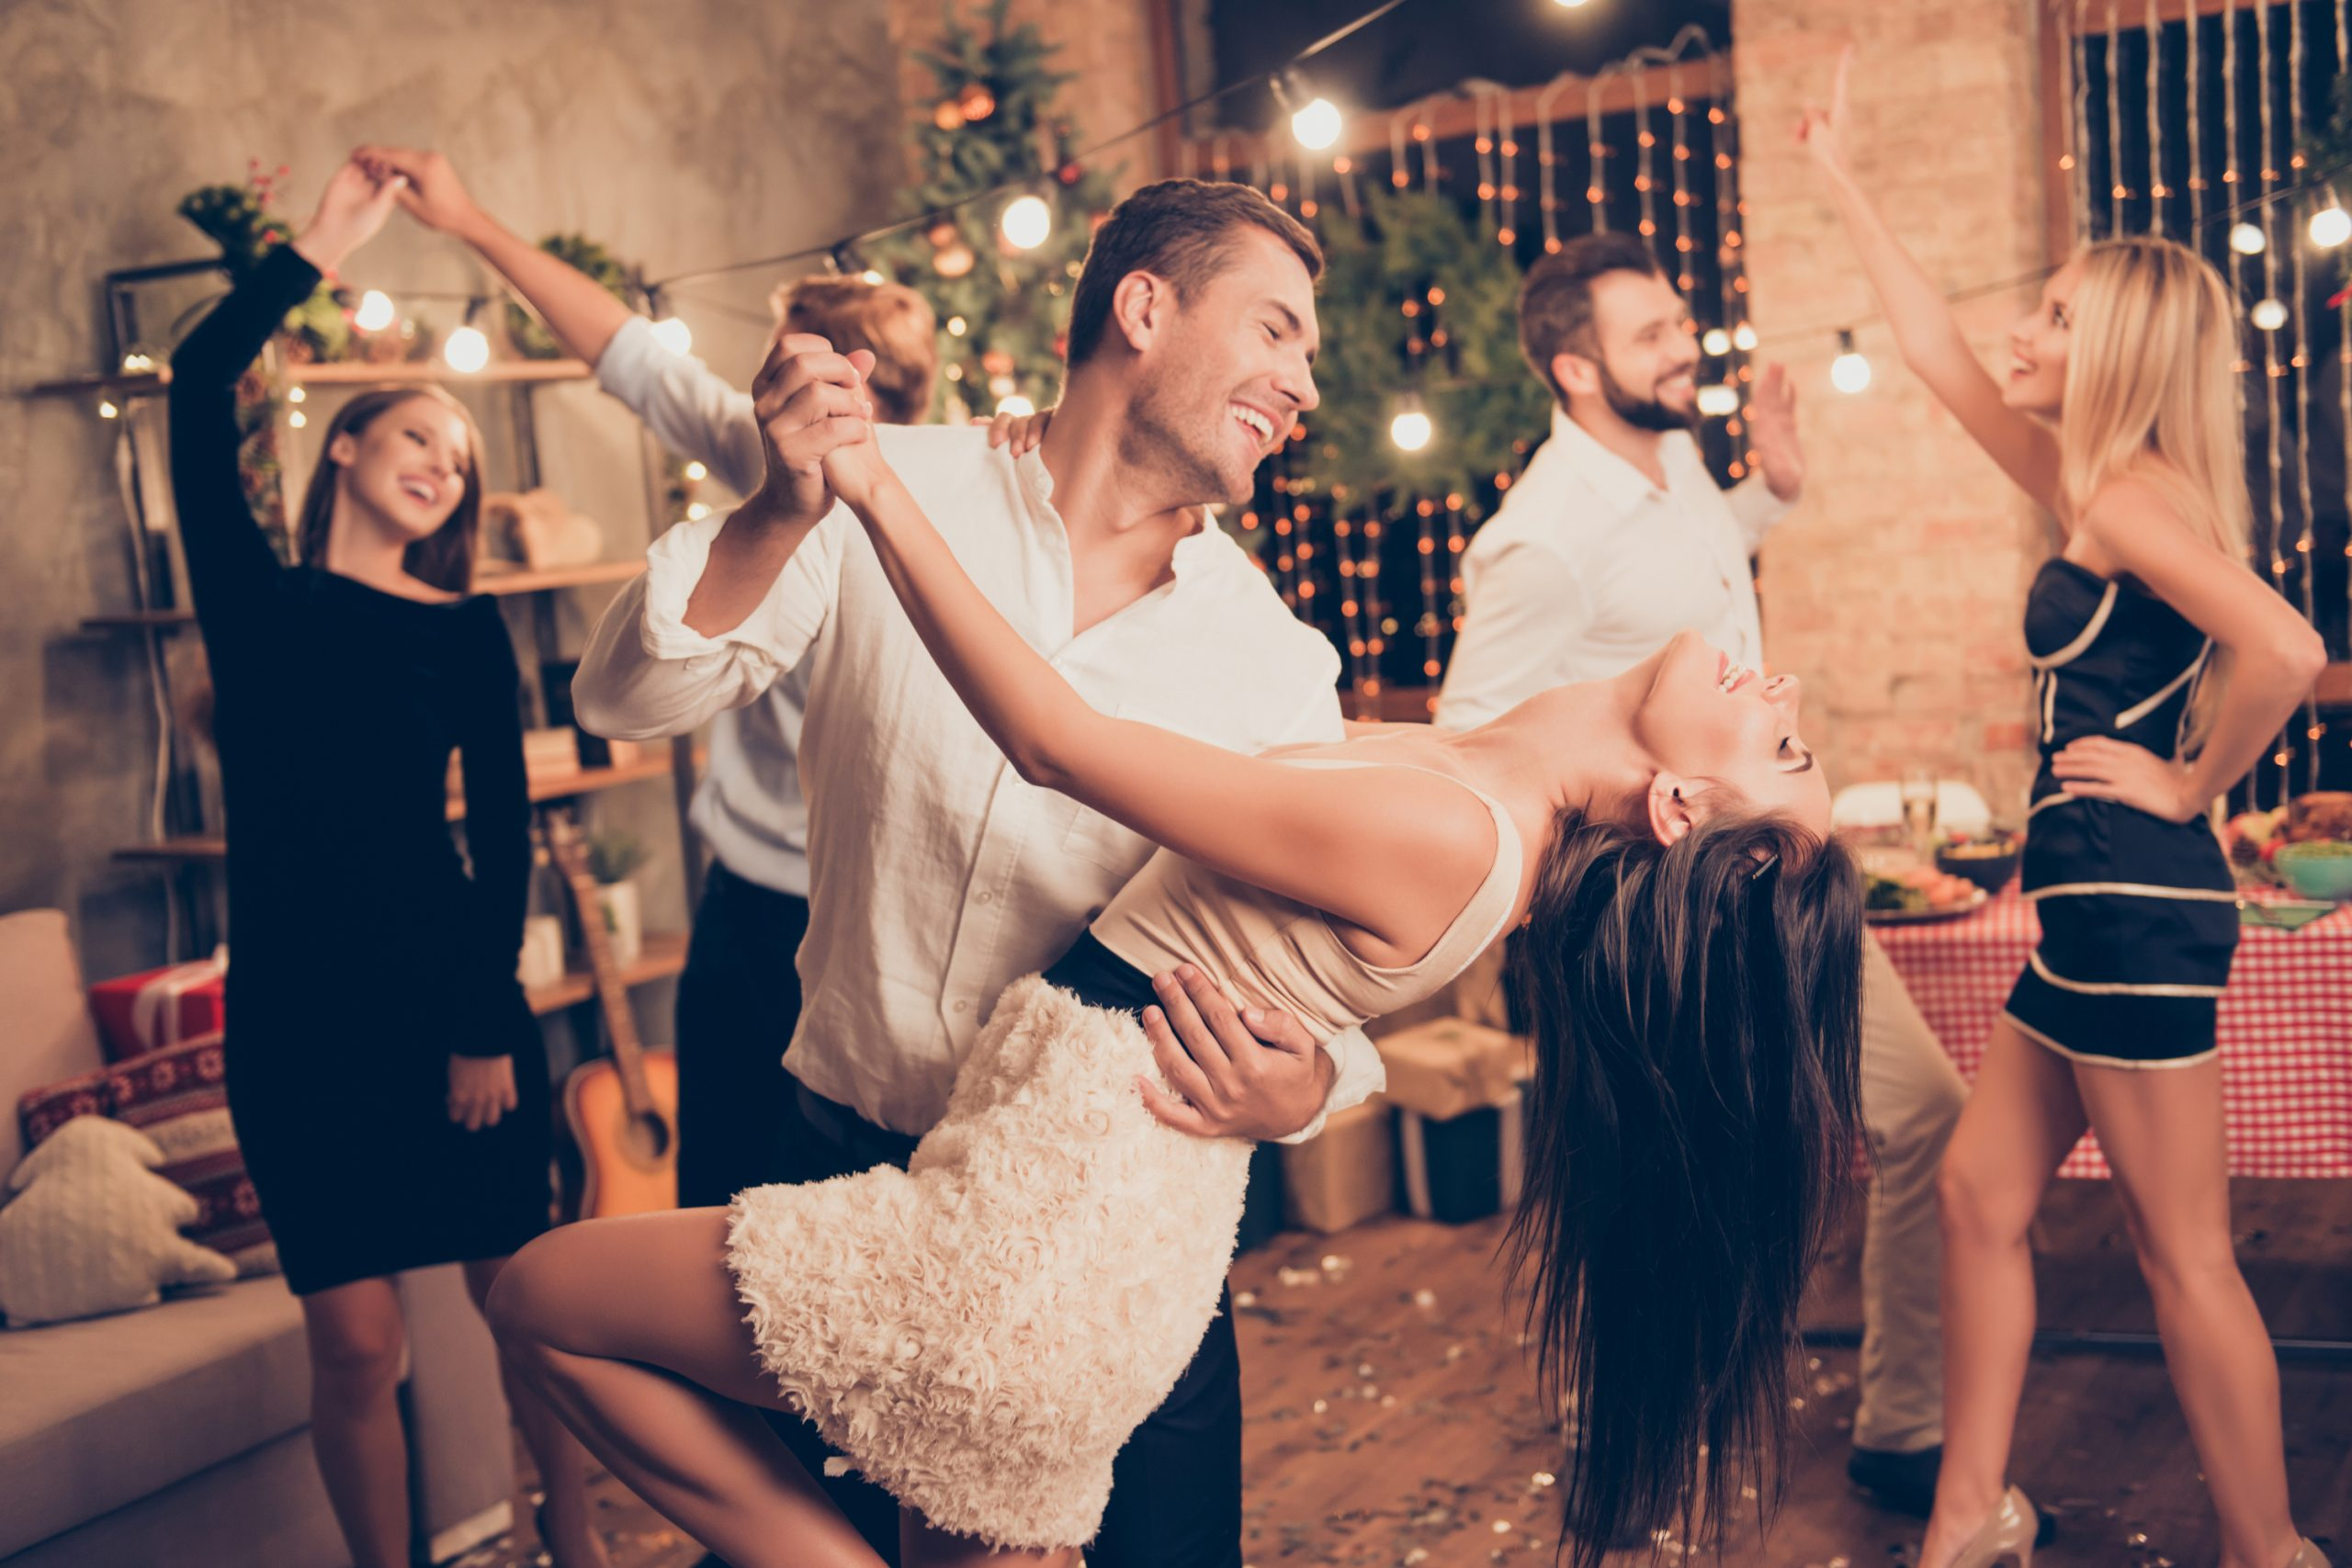 I am not going to lie, sometimes it's hard to think of something fun to do for date night! Fortunately, if you ever find yourself stuck, I've got you covered with these alphabet date night ideas that start with D. Try going out for dinner and dancing! I promise it's a good time.